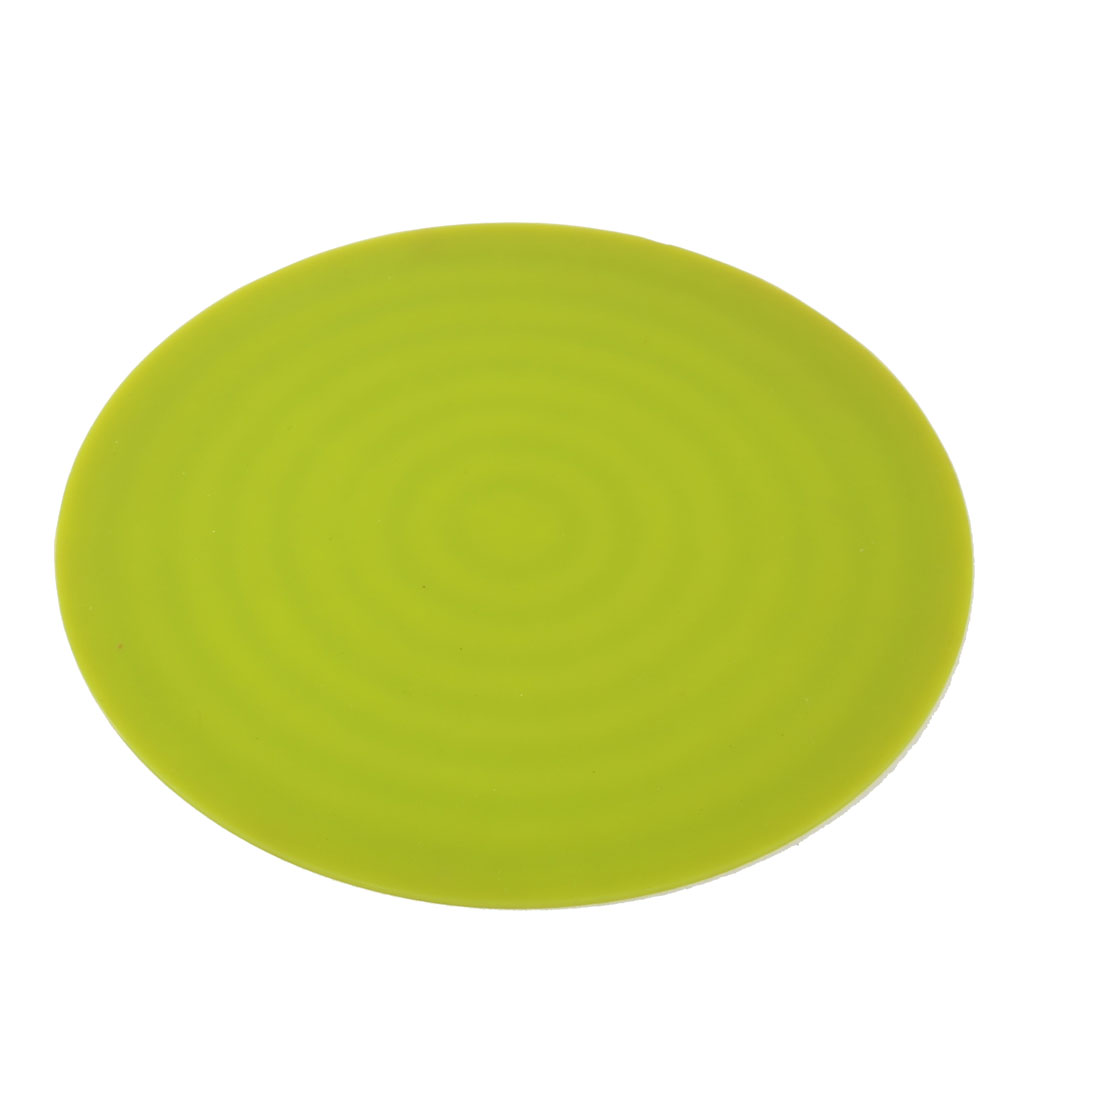 Table Bowl Cup Pot Rubber Round Shaped Heat Insulation Mat Pad Holder Green